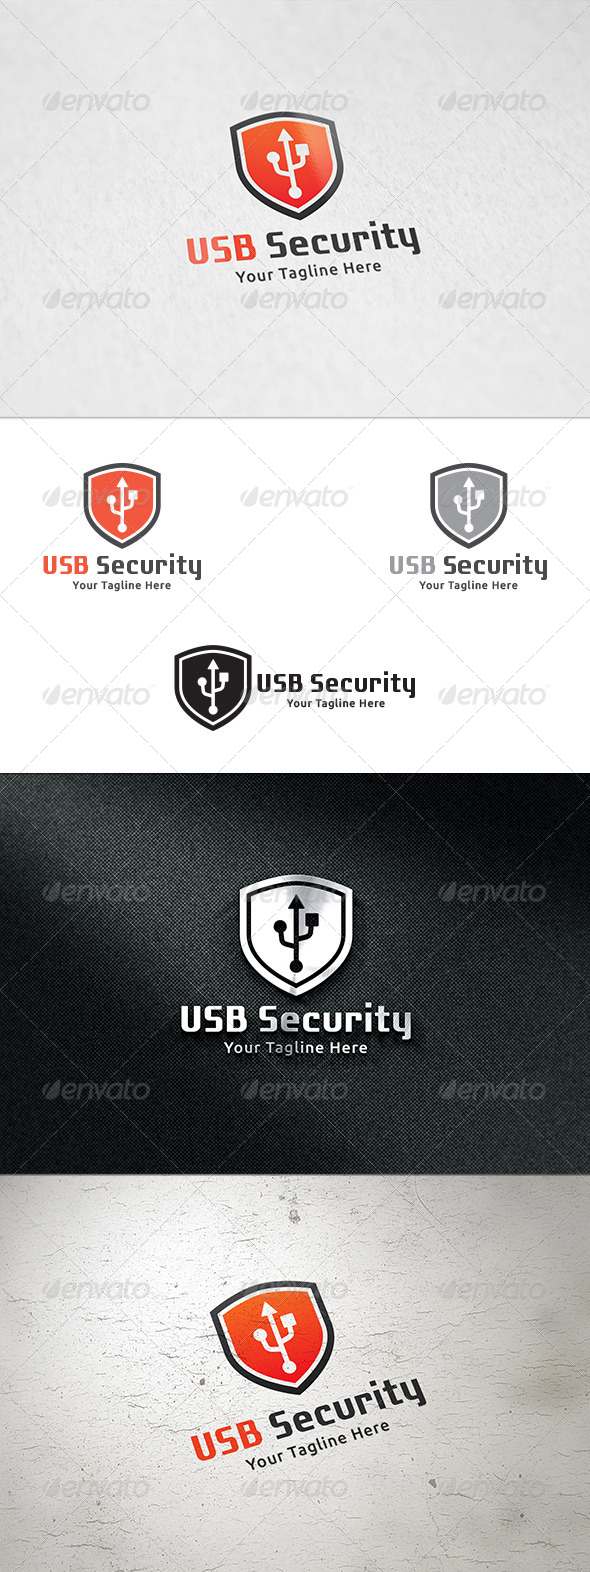 USB Security Logo Template